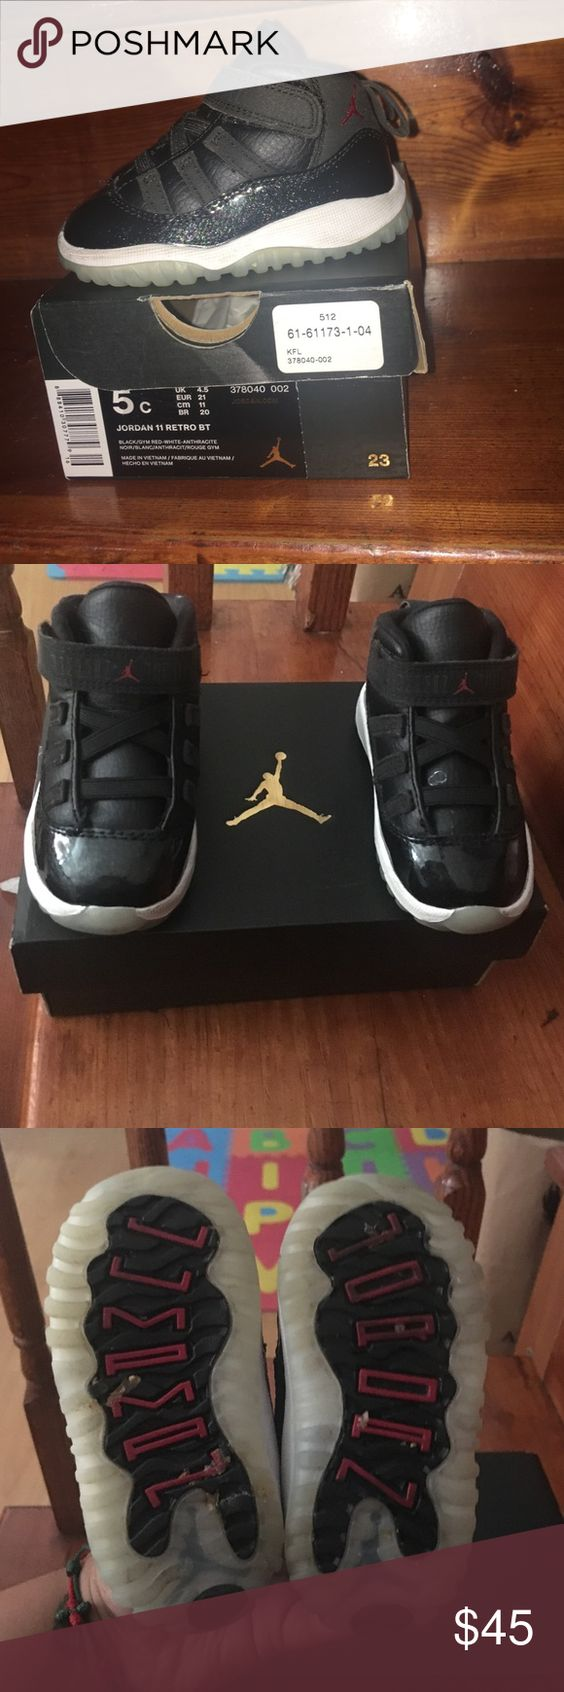 Toddlers Jordan Retro 11's In great condition! Worn for a few months only so no scratches, scuffs, etc. Jordan Shoes Sneakers